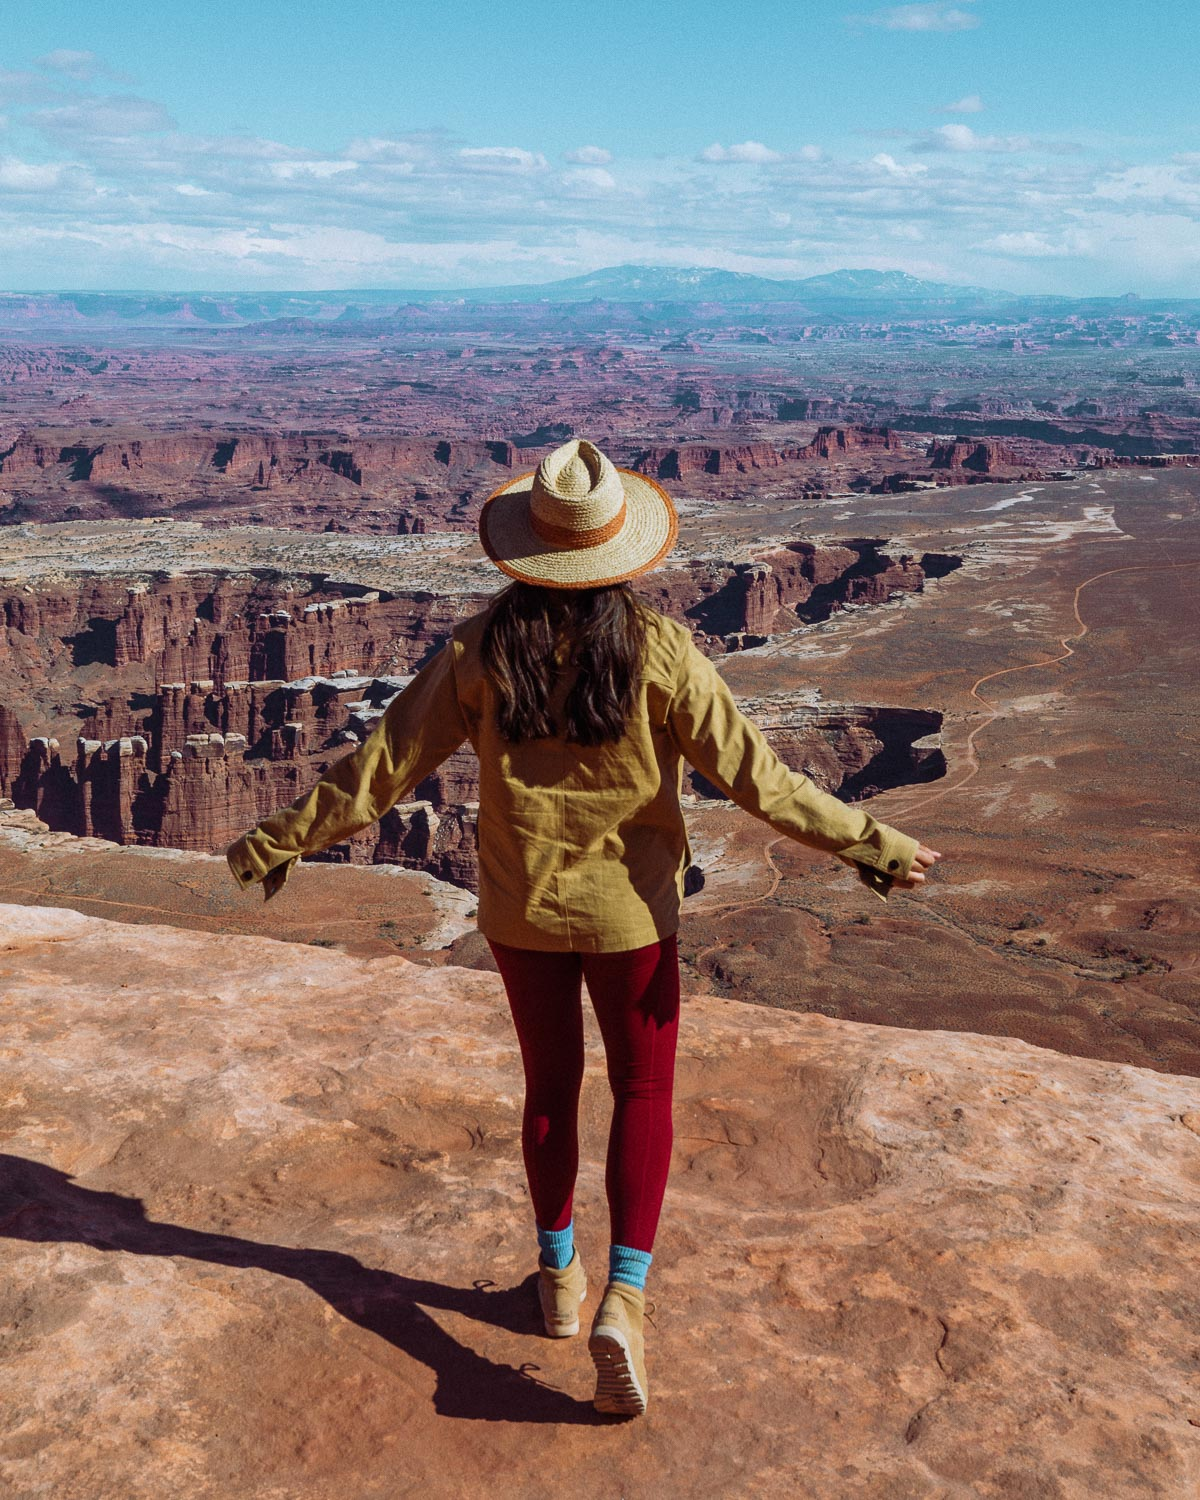 Rachel Off Duty: A Woman in a Khaki Jacket and Red Yoga Pants Admires the View at Canyonlands